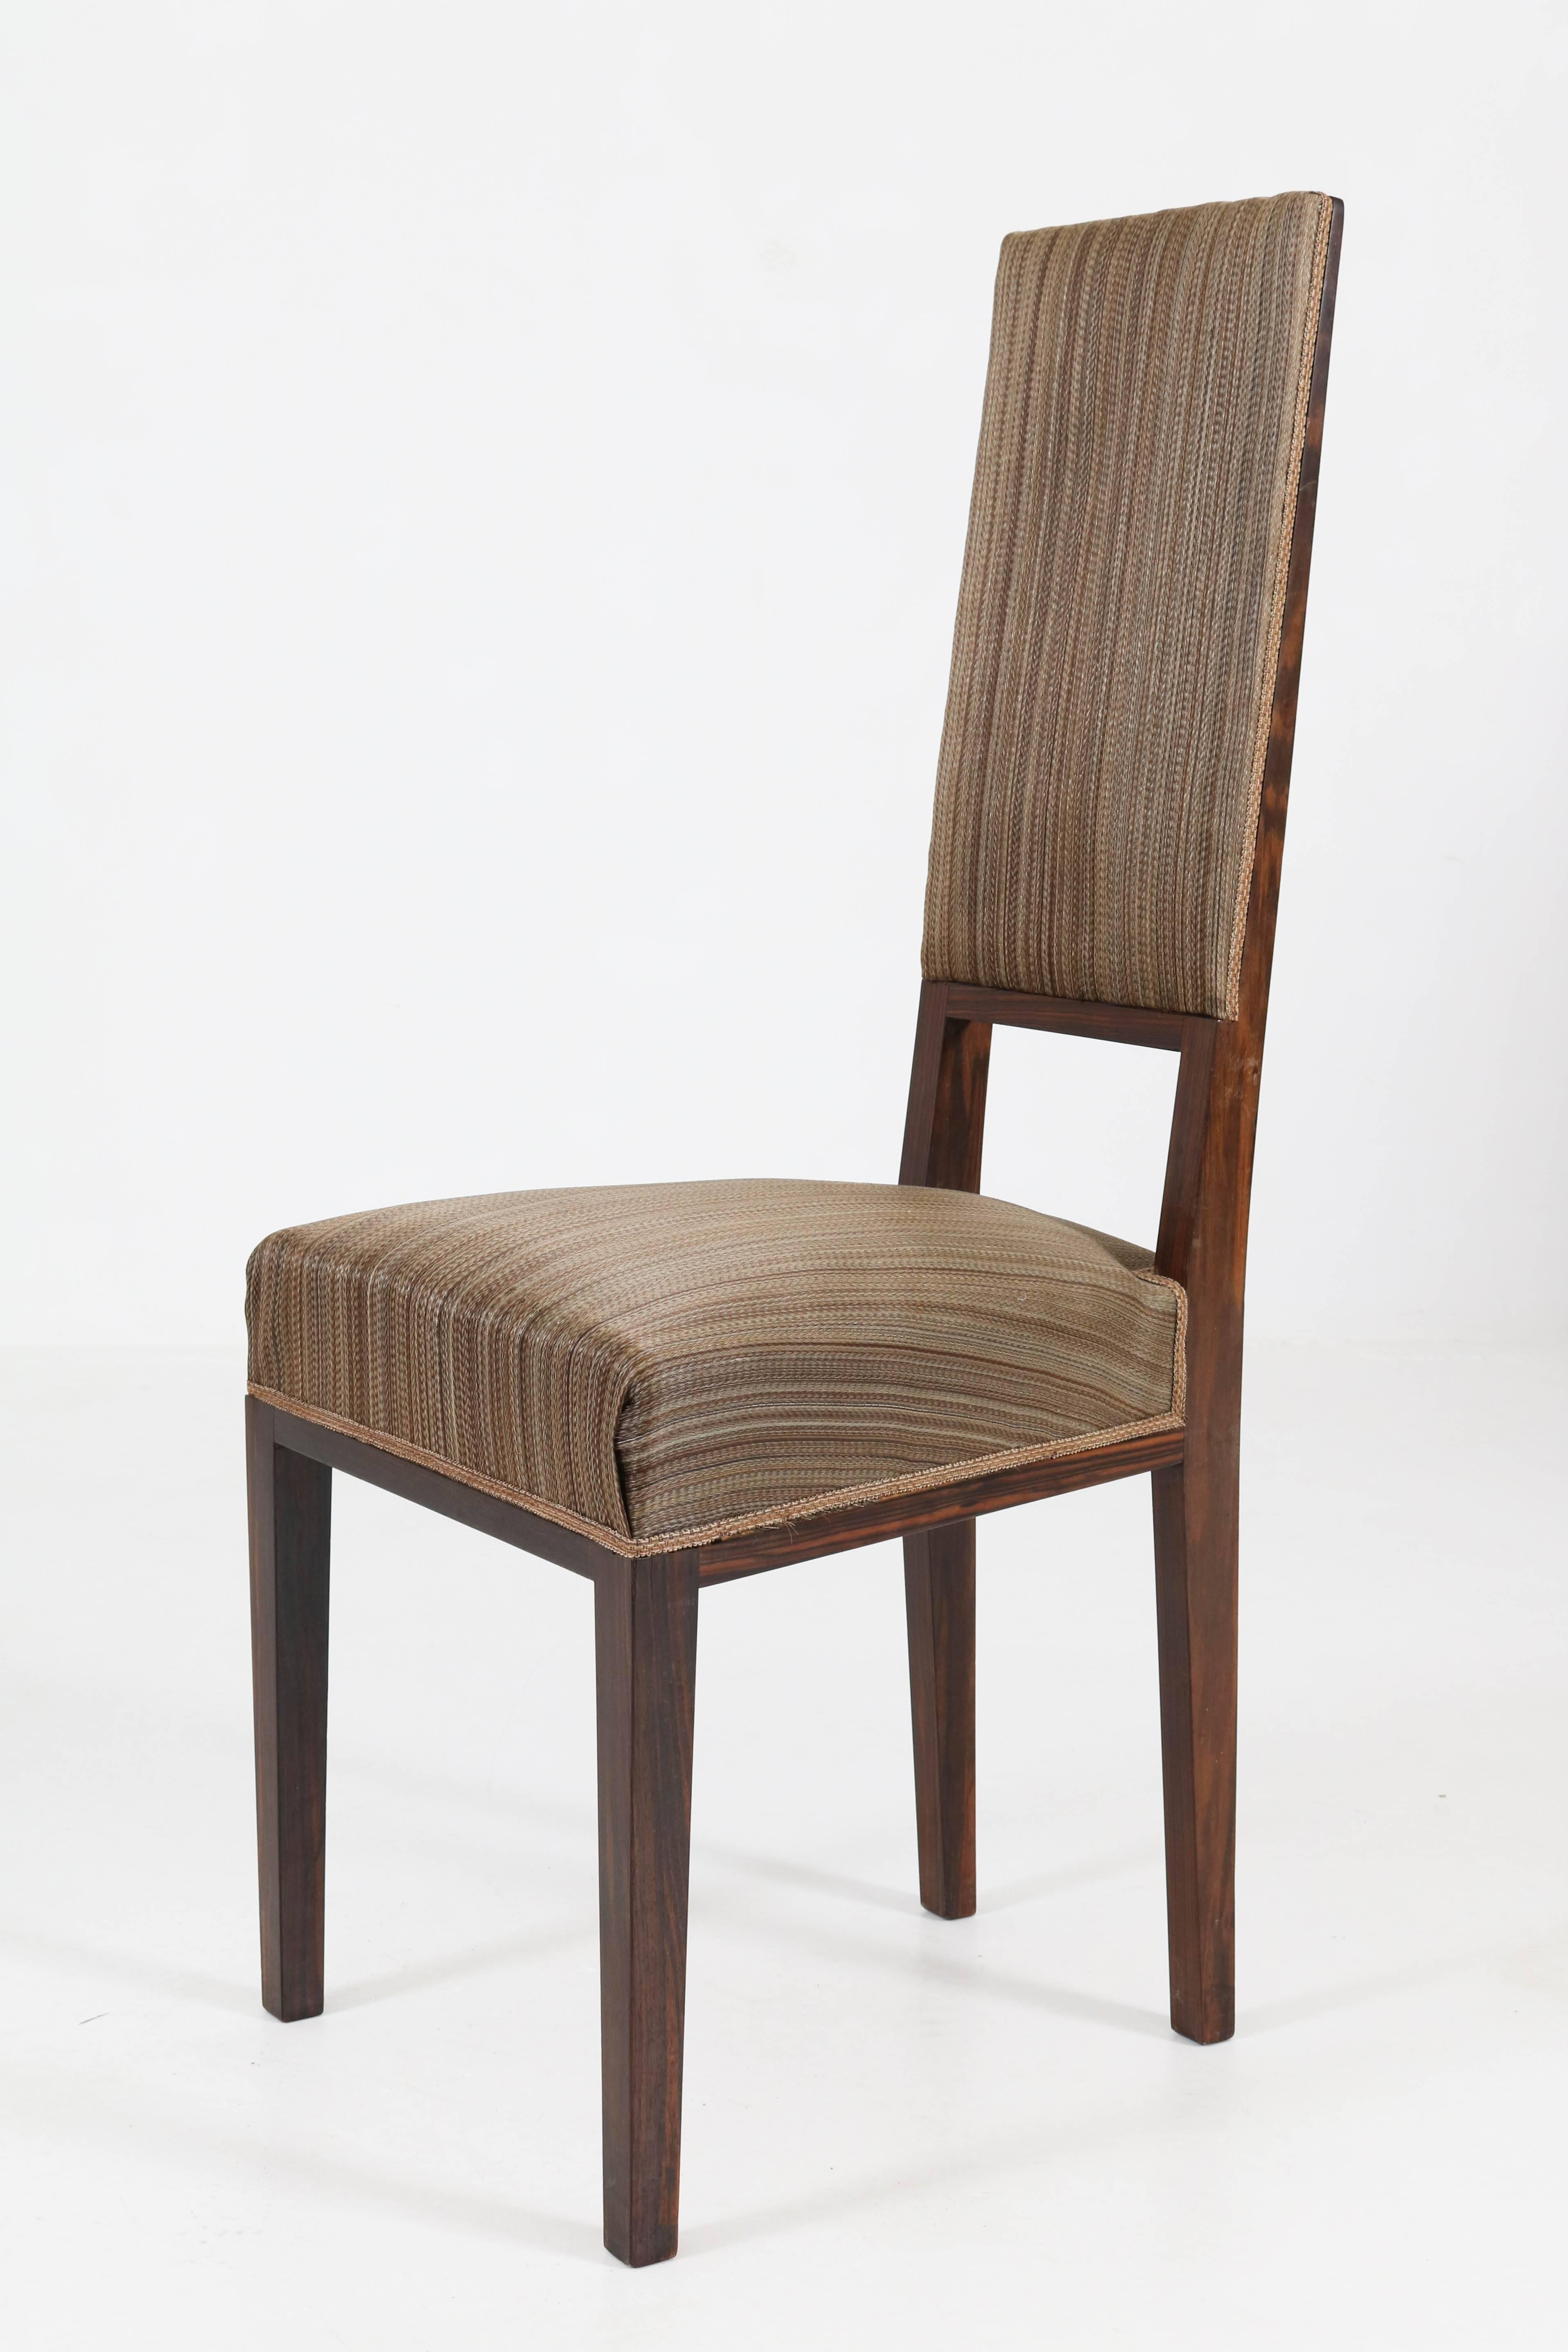 Superieur Eight Macassar Ebony Dutch Art Deco Chairs By U0027t Woonhuys Amsterdam, 1930s  For Sale